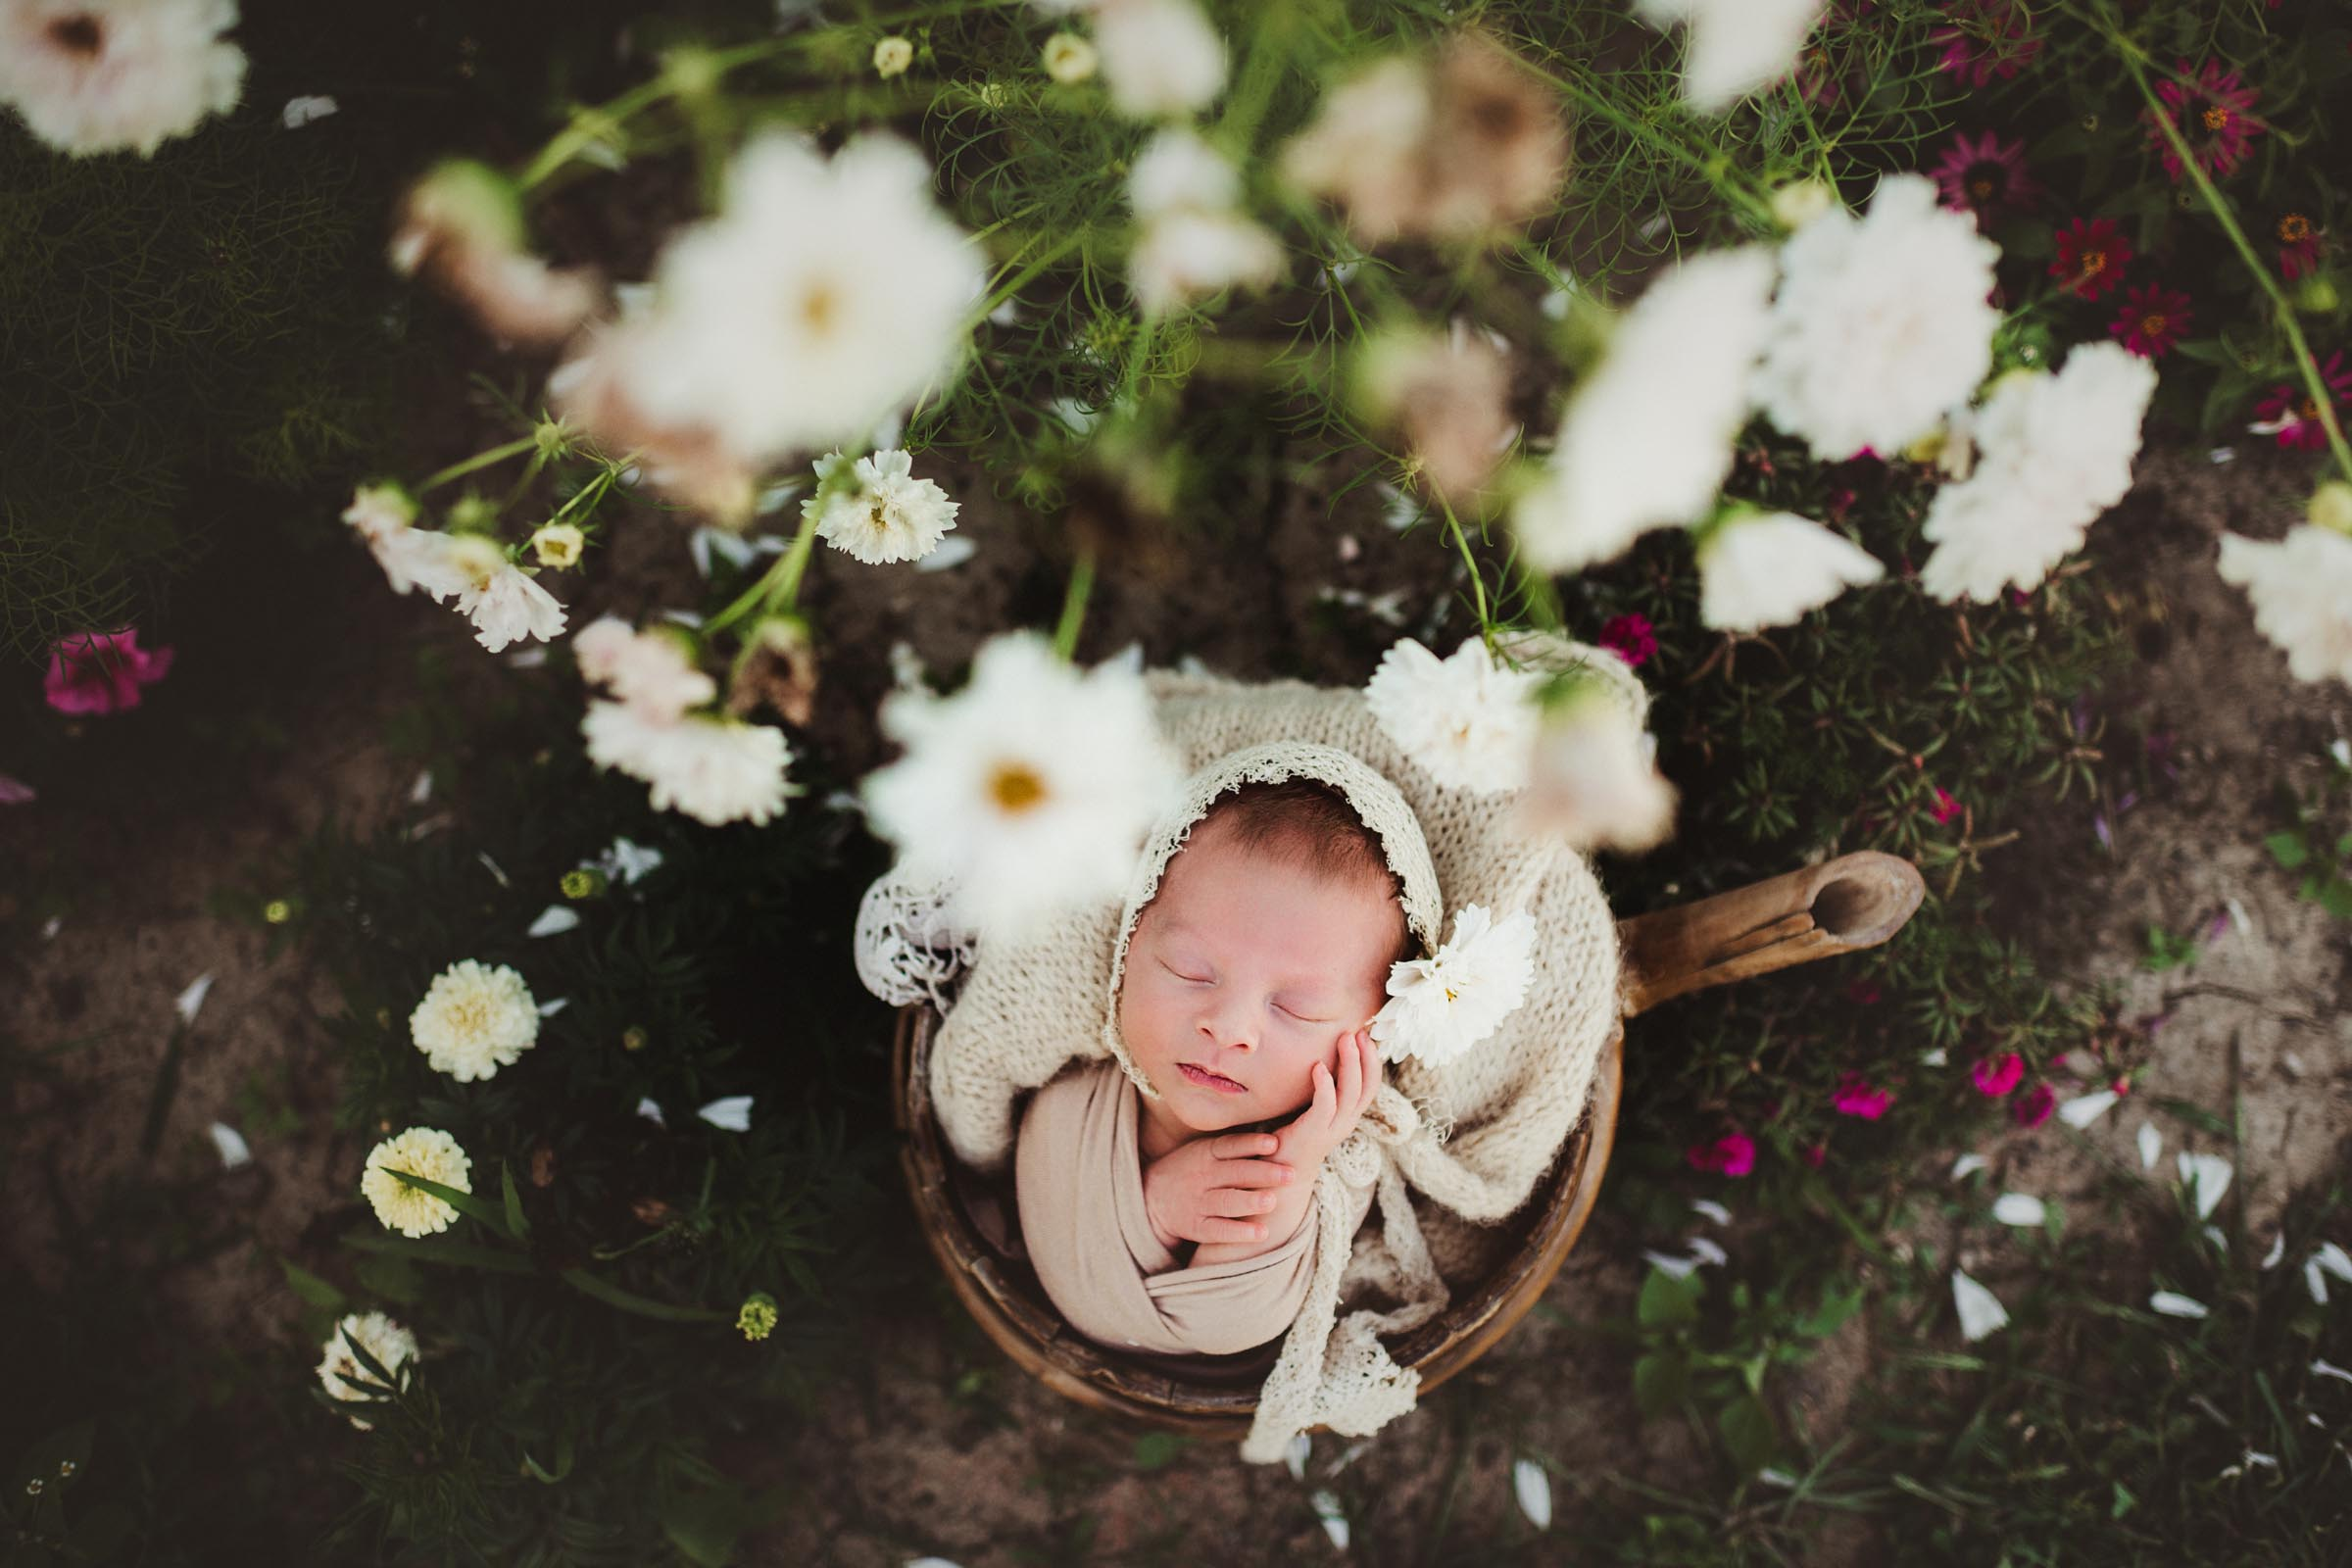 flowers surround a newborn baby sleeping outiside